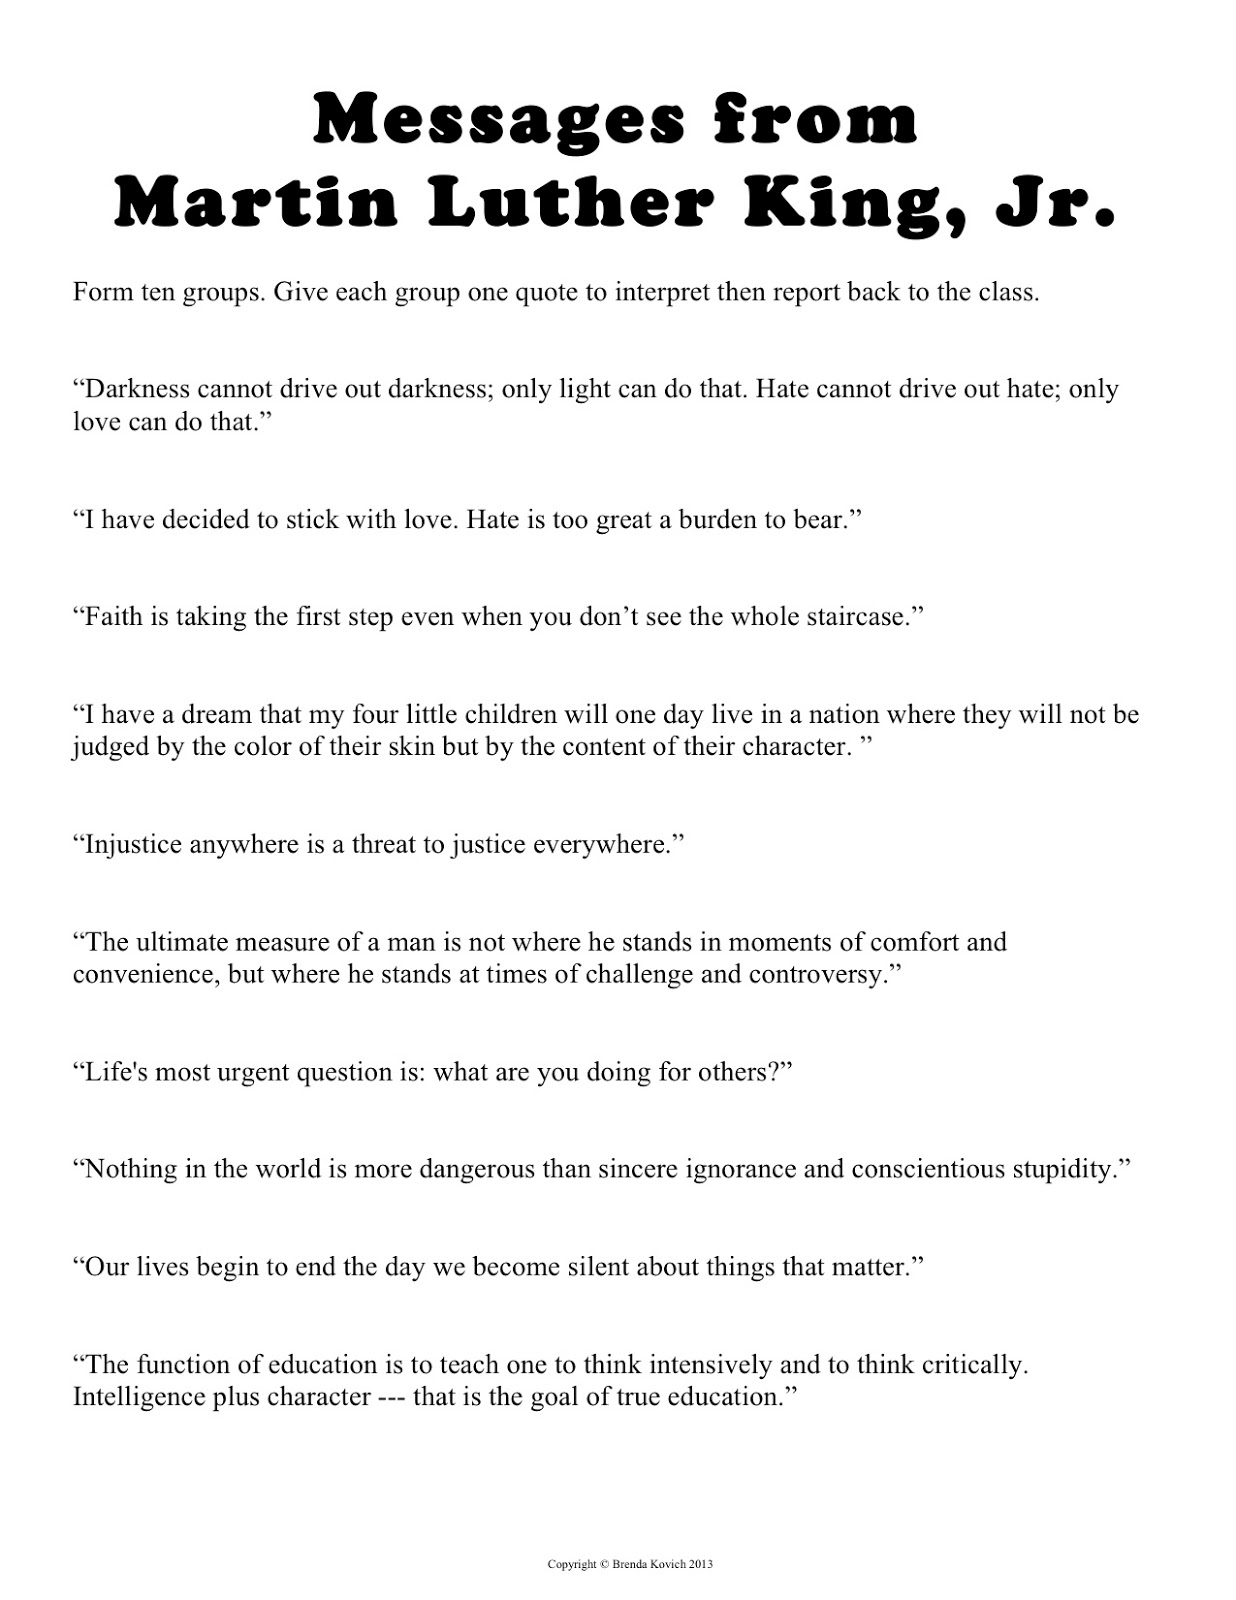 teaching seriously 2013 today i will show my students this video of dr king s speech and explore messages he sent to us through his quotes you either of these by